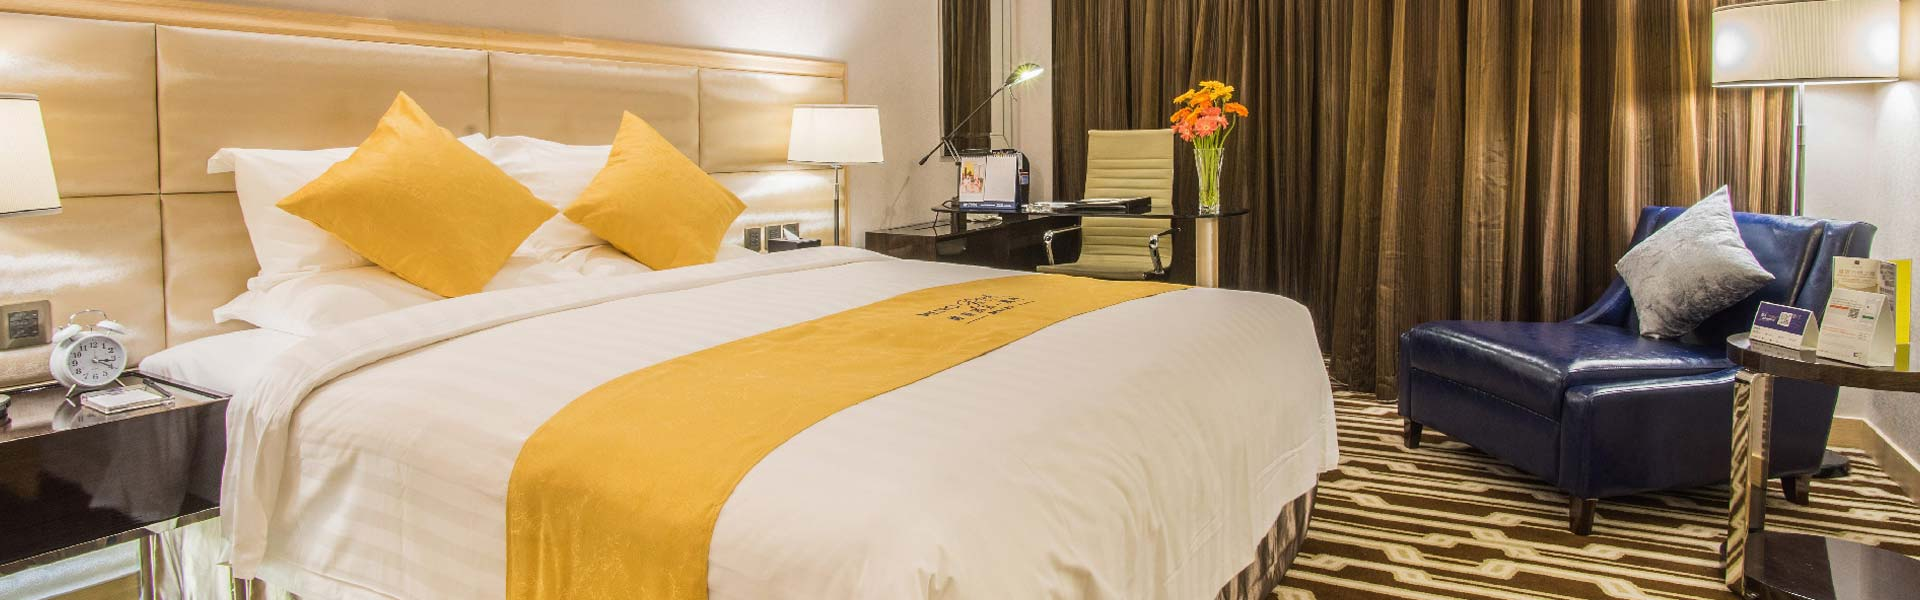 Accommodation Metropark Macau